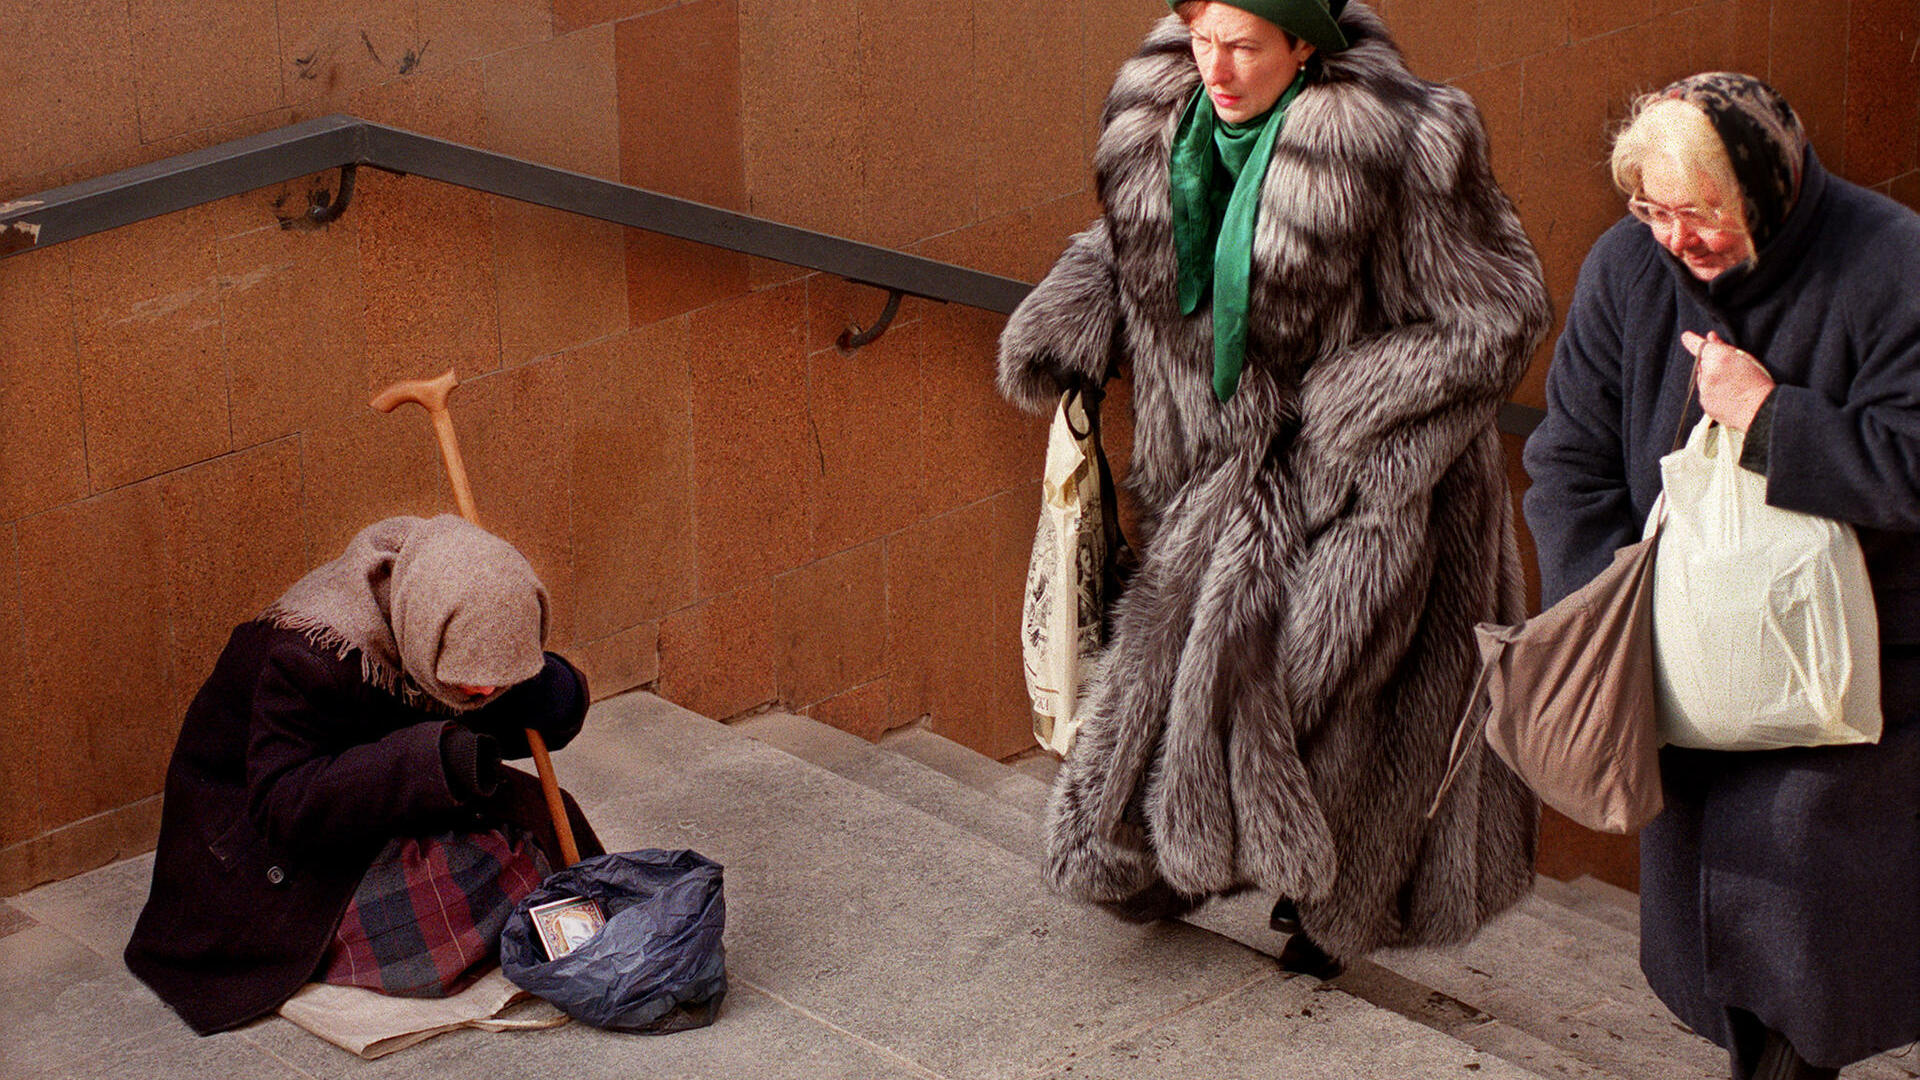 Two women walk past a beggar sitting on the steps of an underground pedestrian crossing in downtown Moscow, Quelle: AP